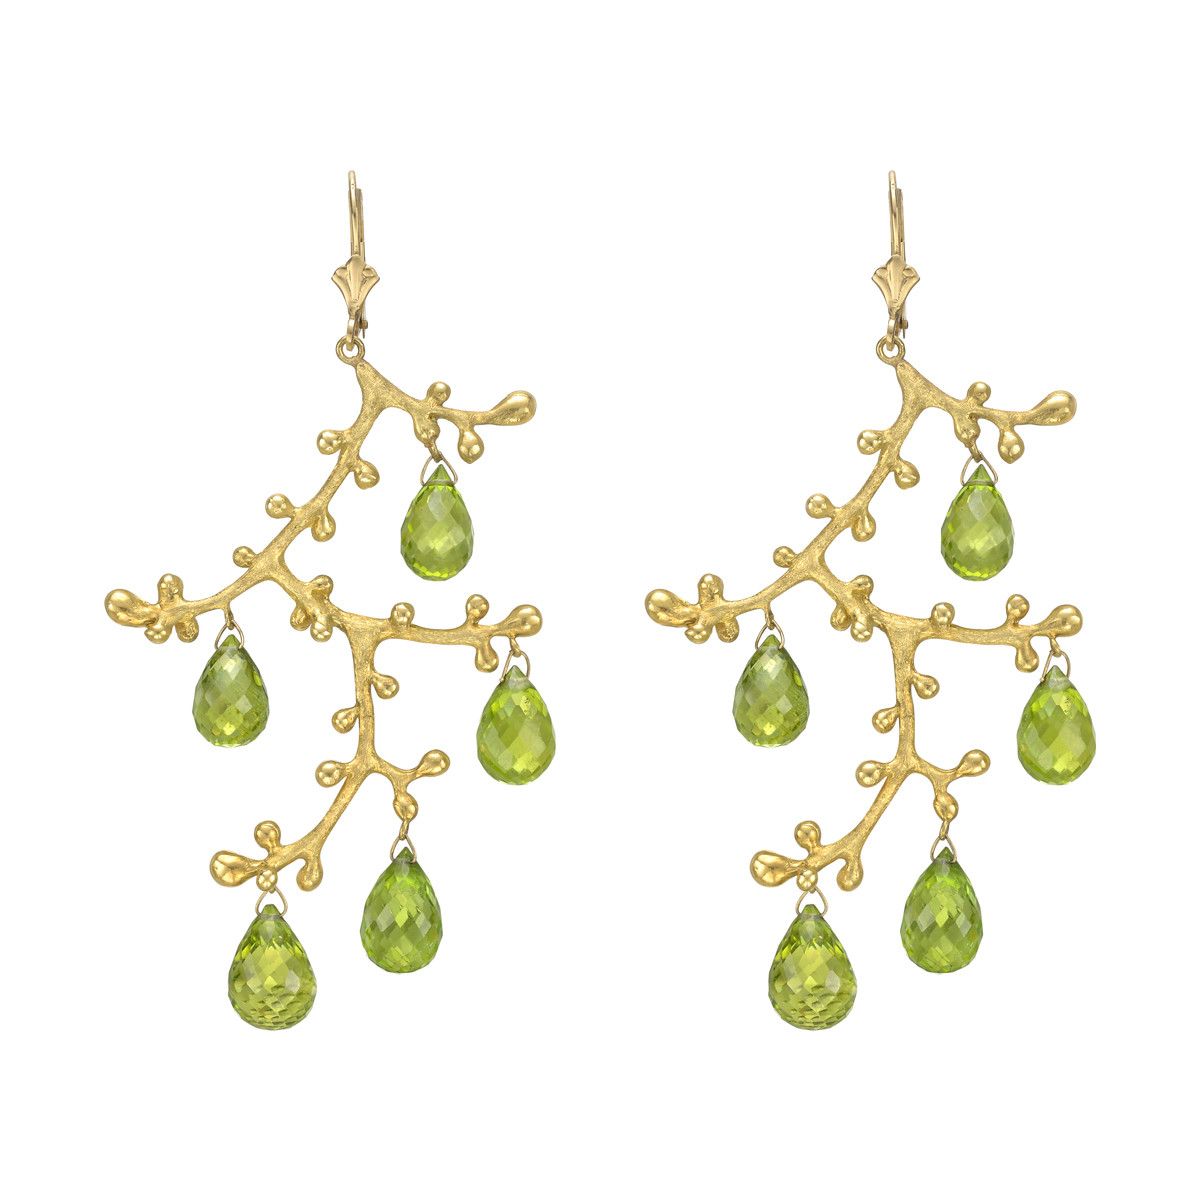 Chandelier earrings, with branch motifs in textured 18k yellow gold suspending briolette-cut peridot drops, by Joseph Murray. French wire tops.